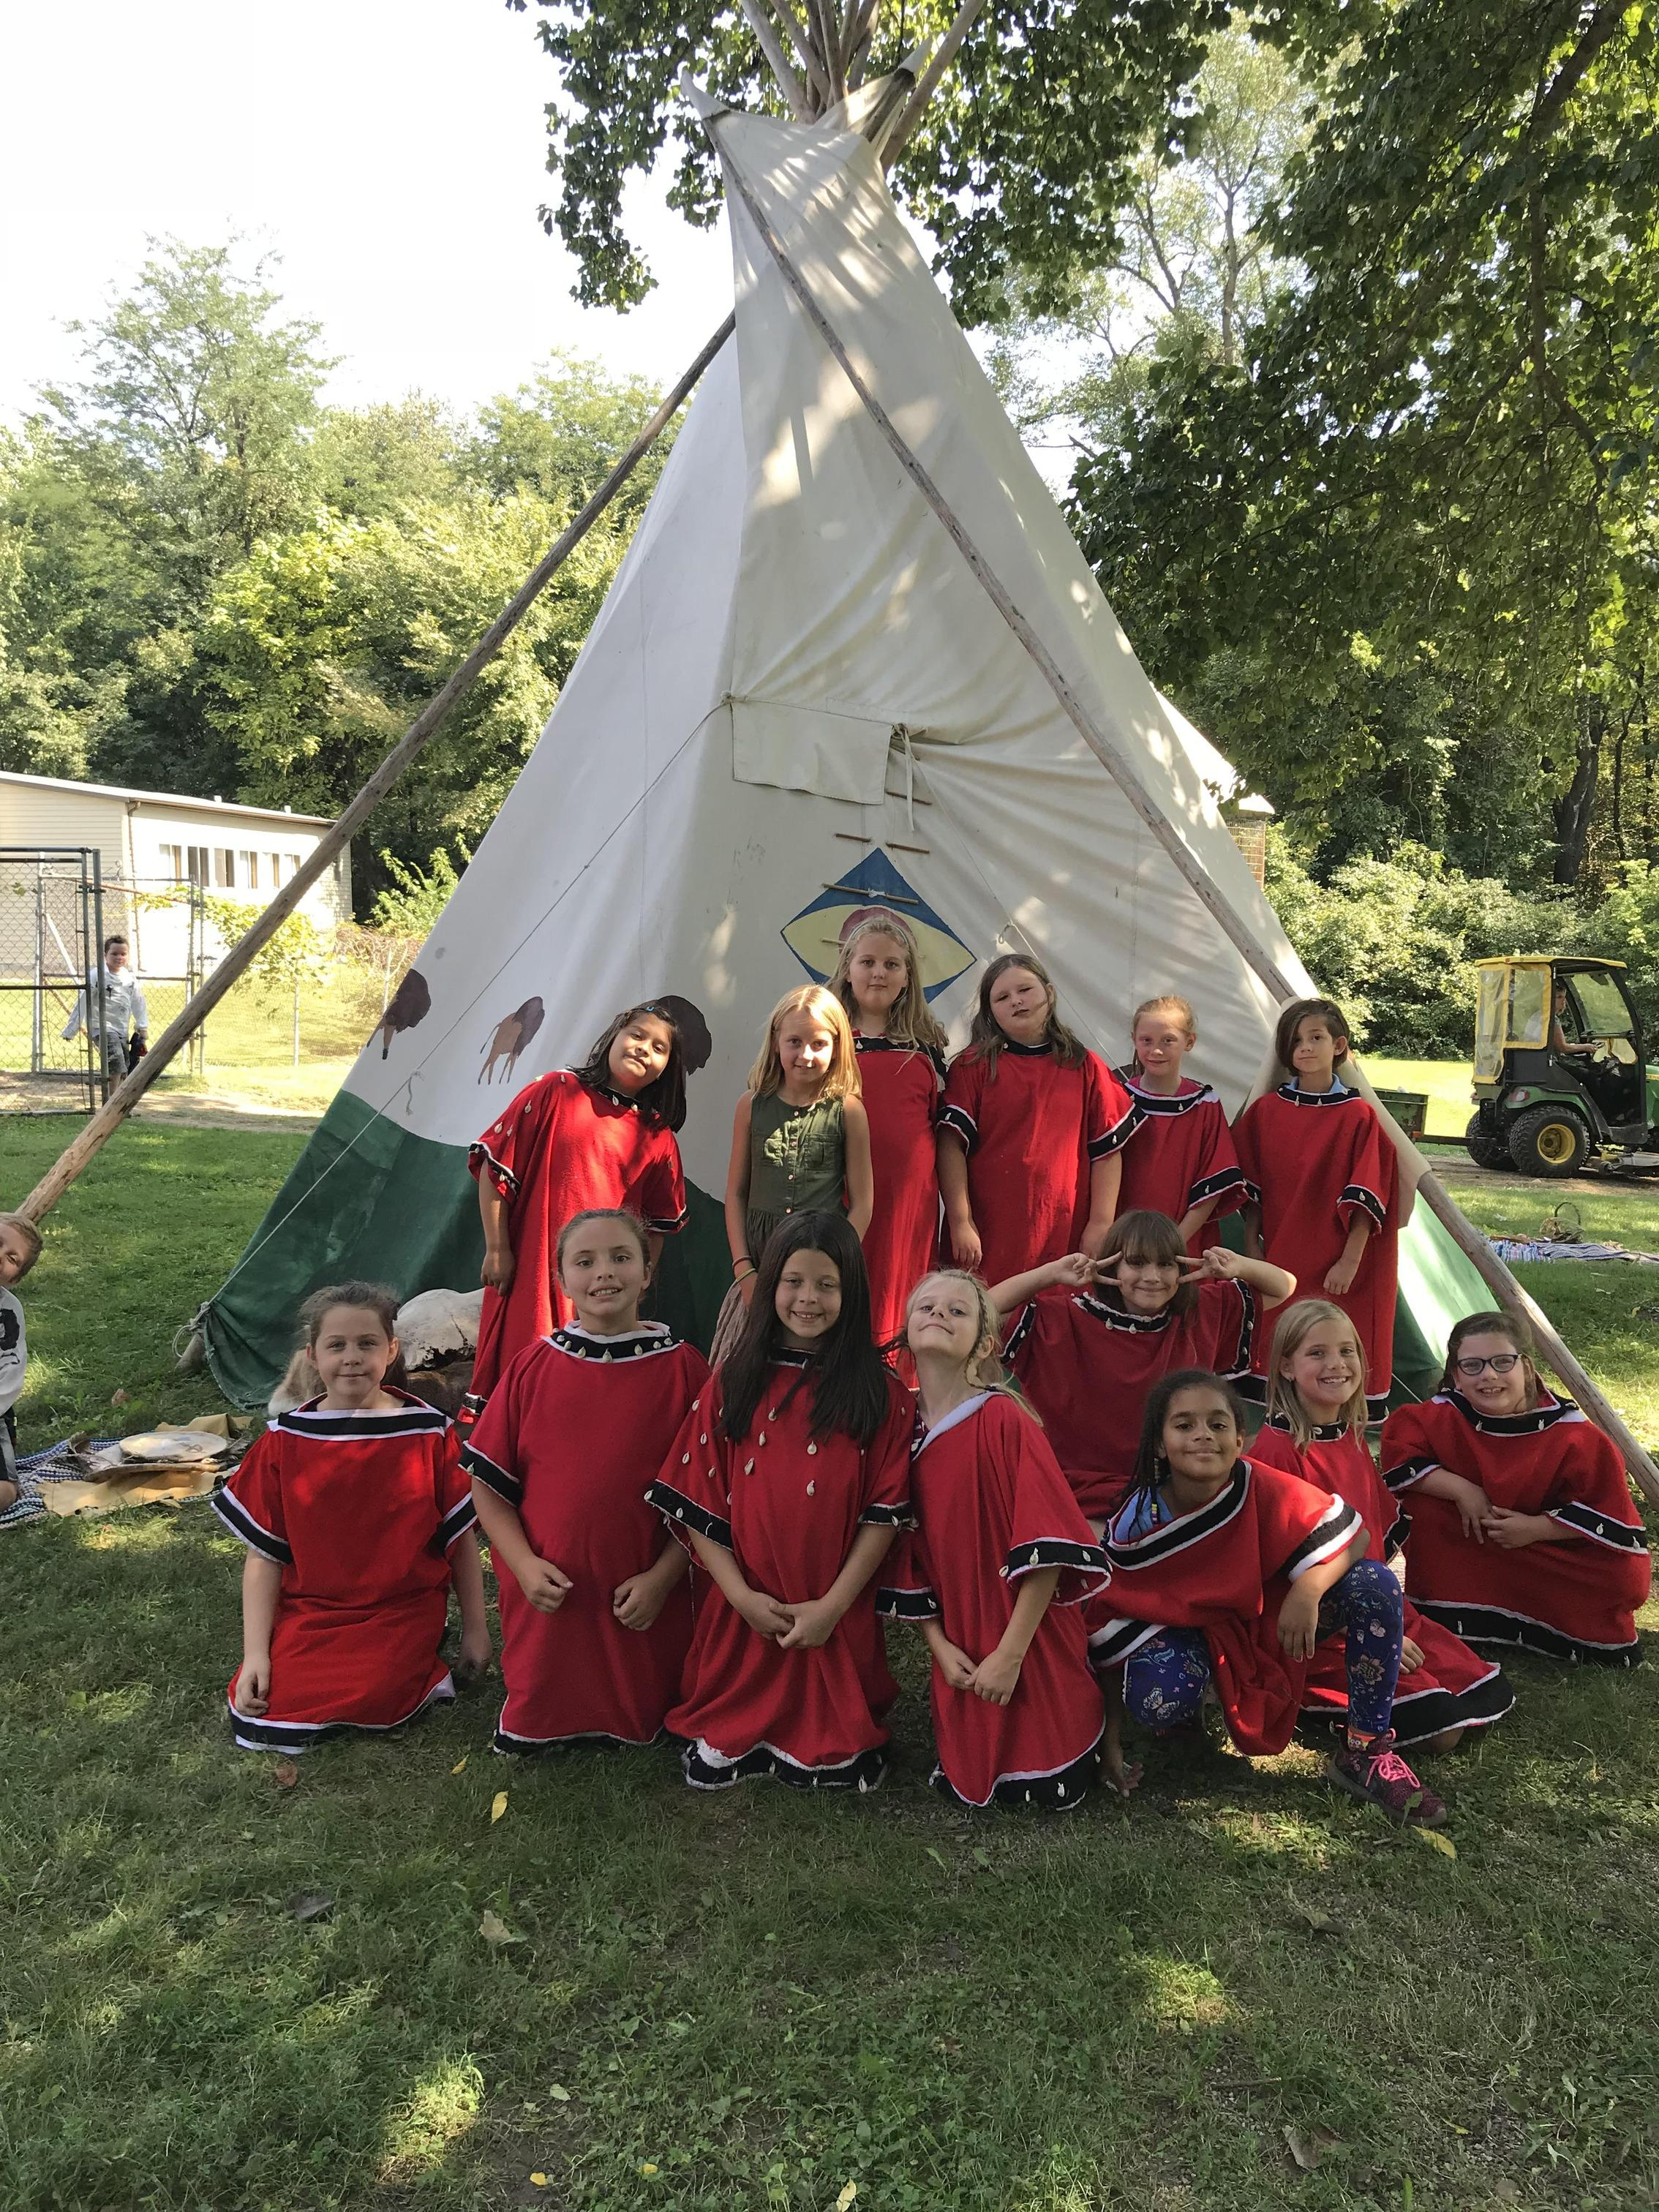 Students dressed as Native Americans in front of a TiPi.